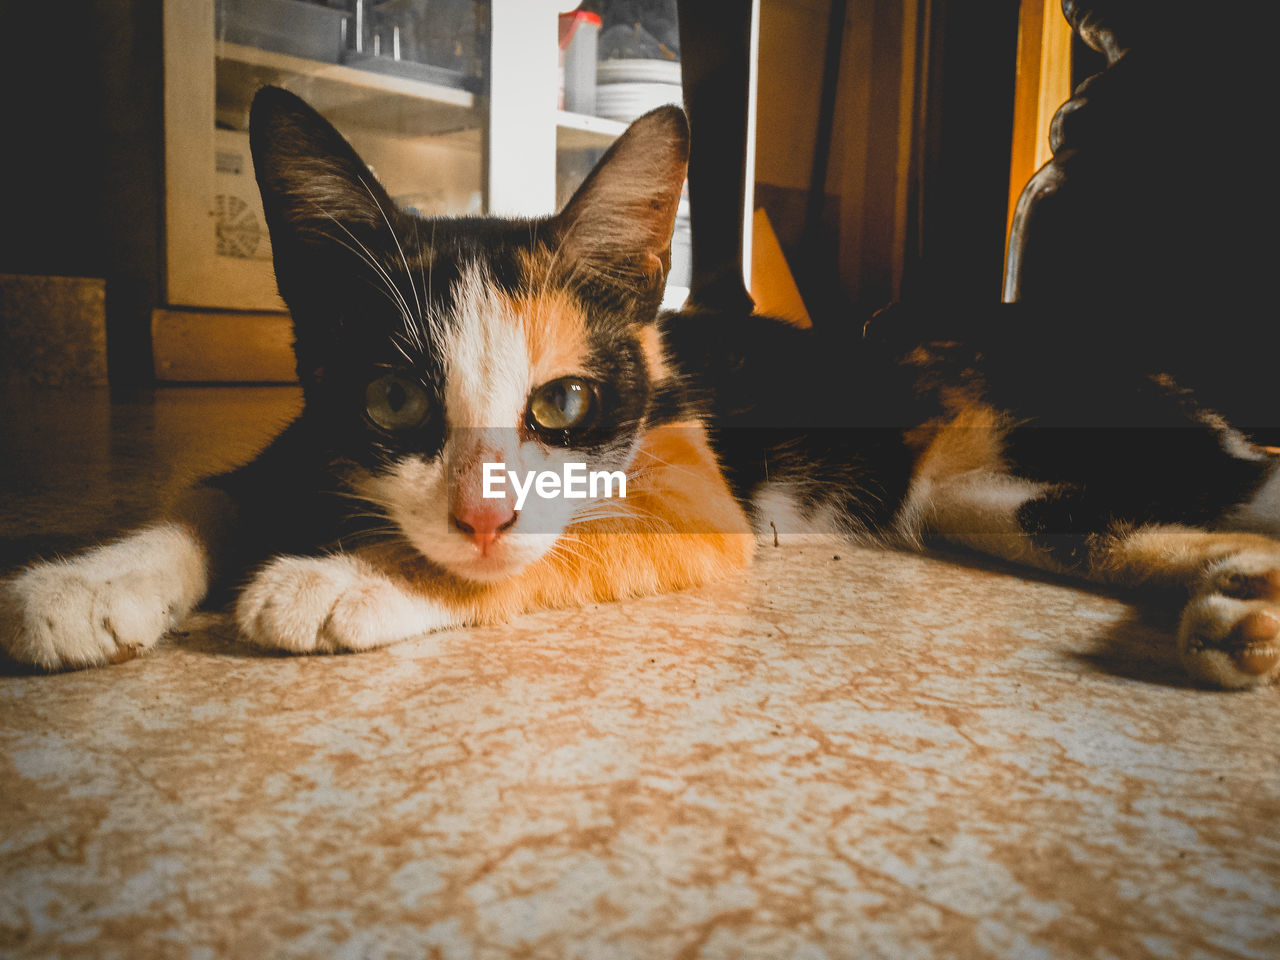 pets, domestic, domestic cat, cat, domestic animals, feline, mammal, animal themes, one animal, animal, portrait, vertebrate, looking at camera, relaxation, indoors, no people, home interior, whisker, flooring, lying down, animal eye